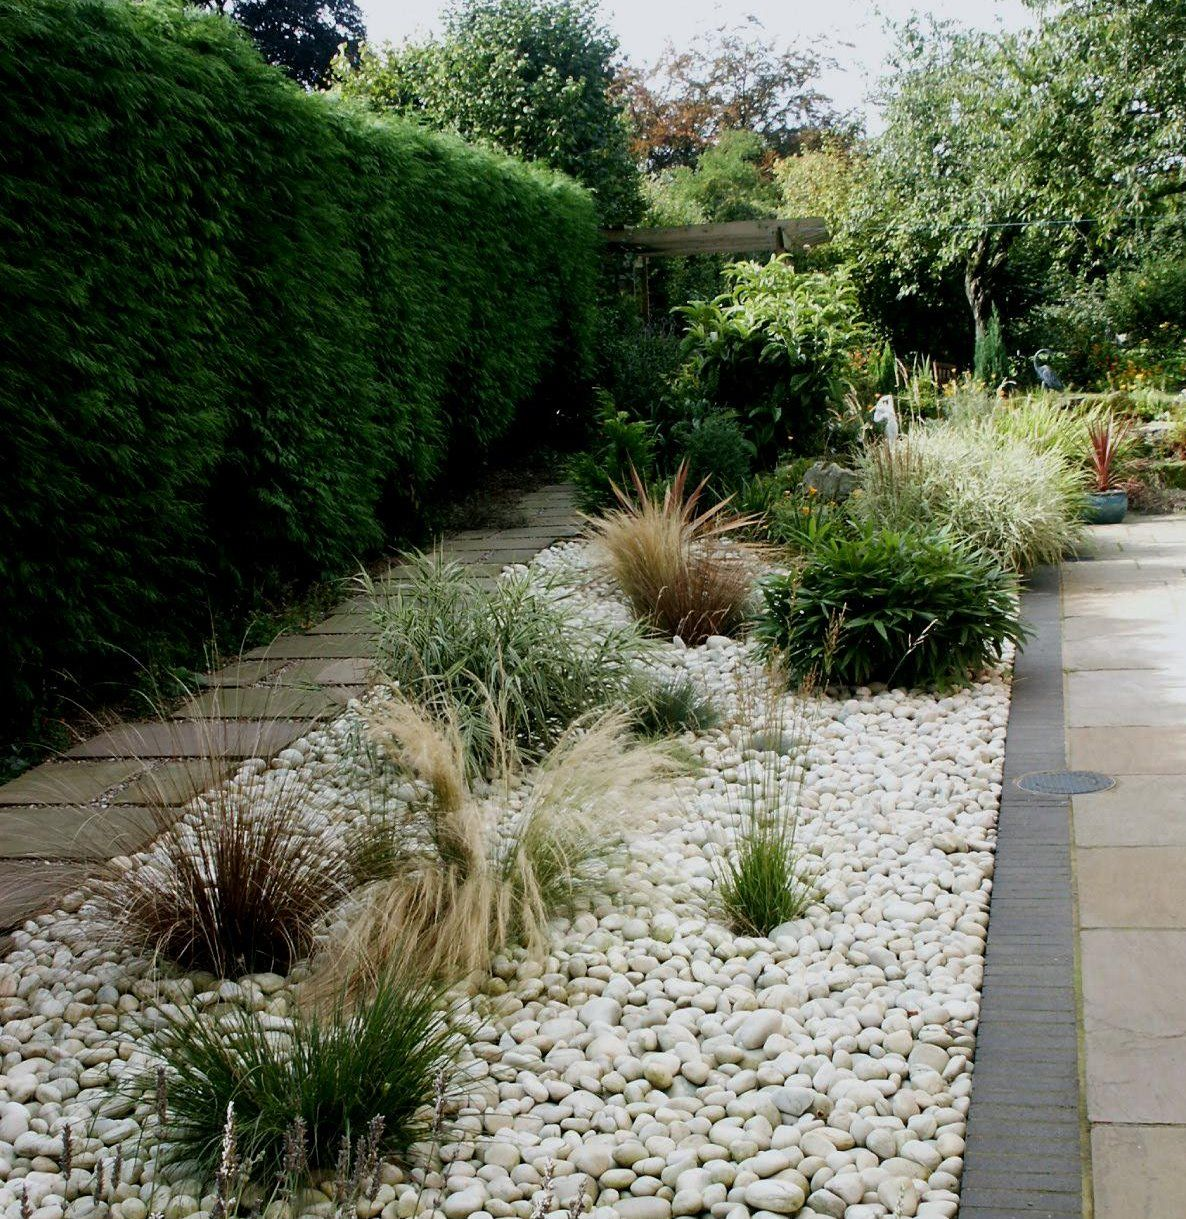 Using Pebbles To Mulch Your Garden: How It Saves You Money ...